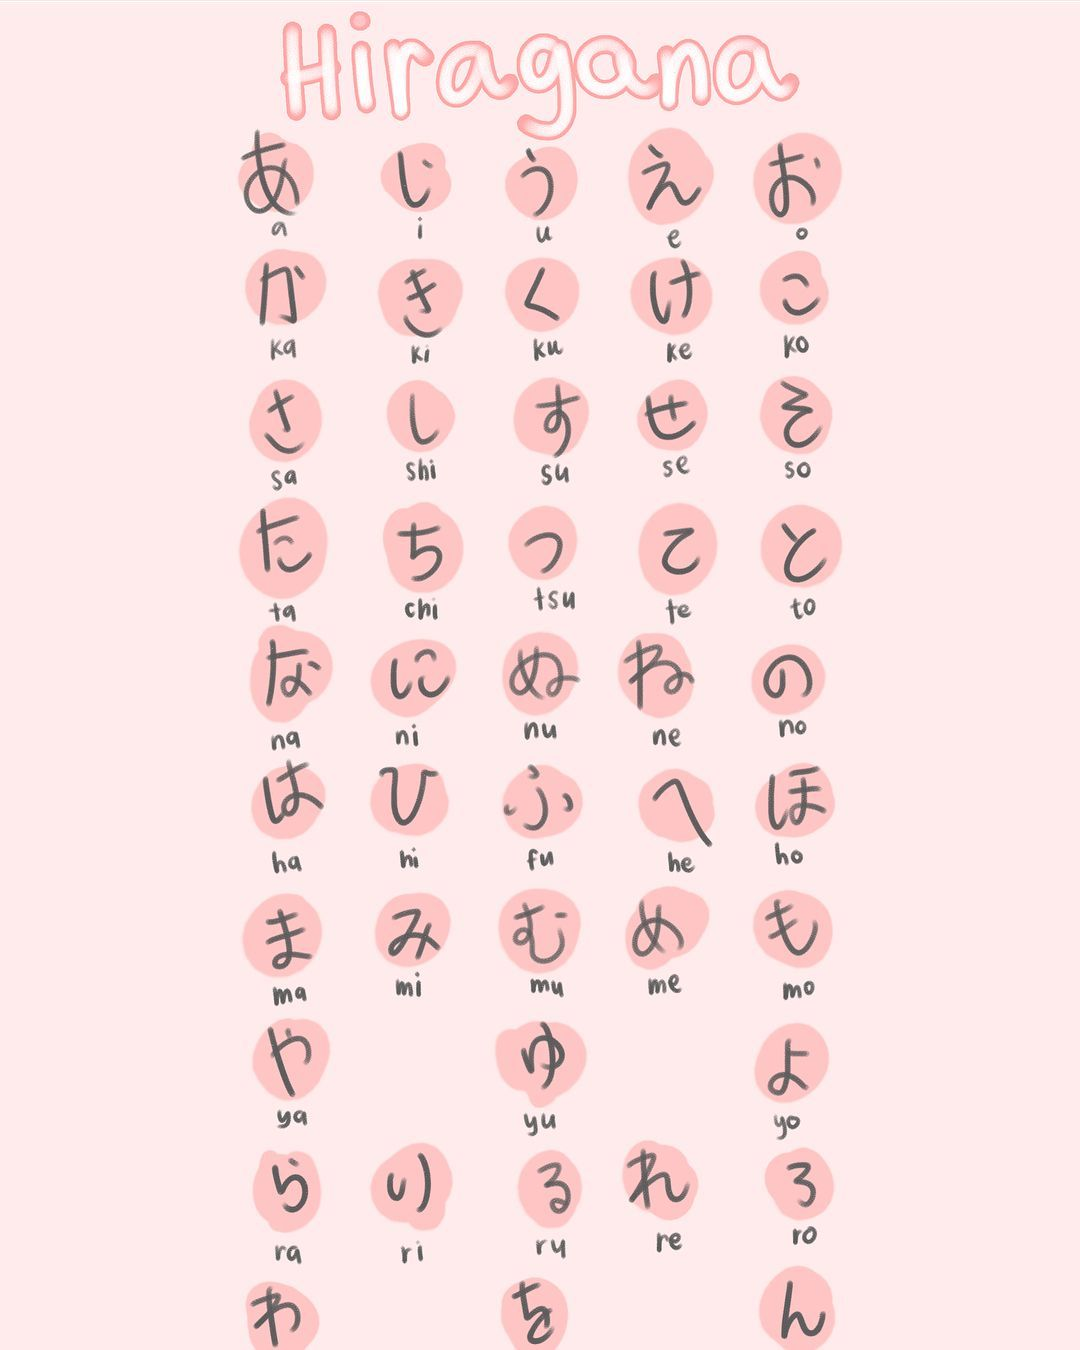 This Is A Japanese Language Study Guide For Hiragana